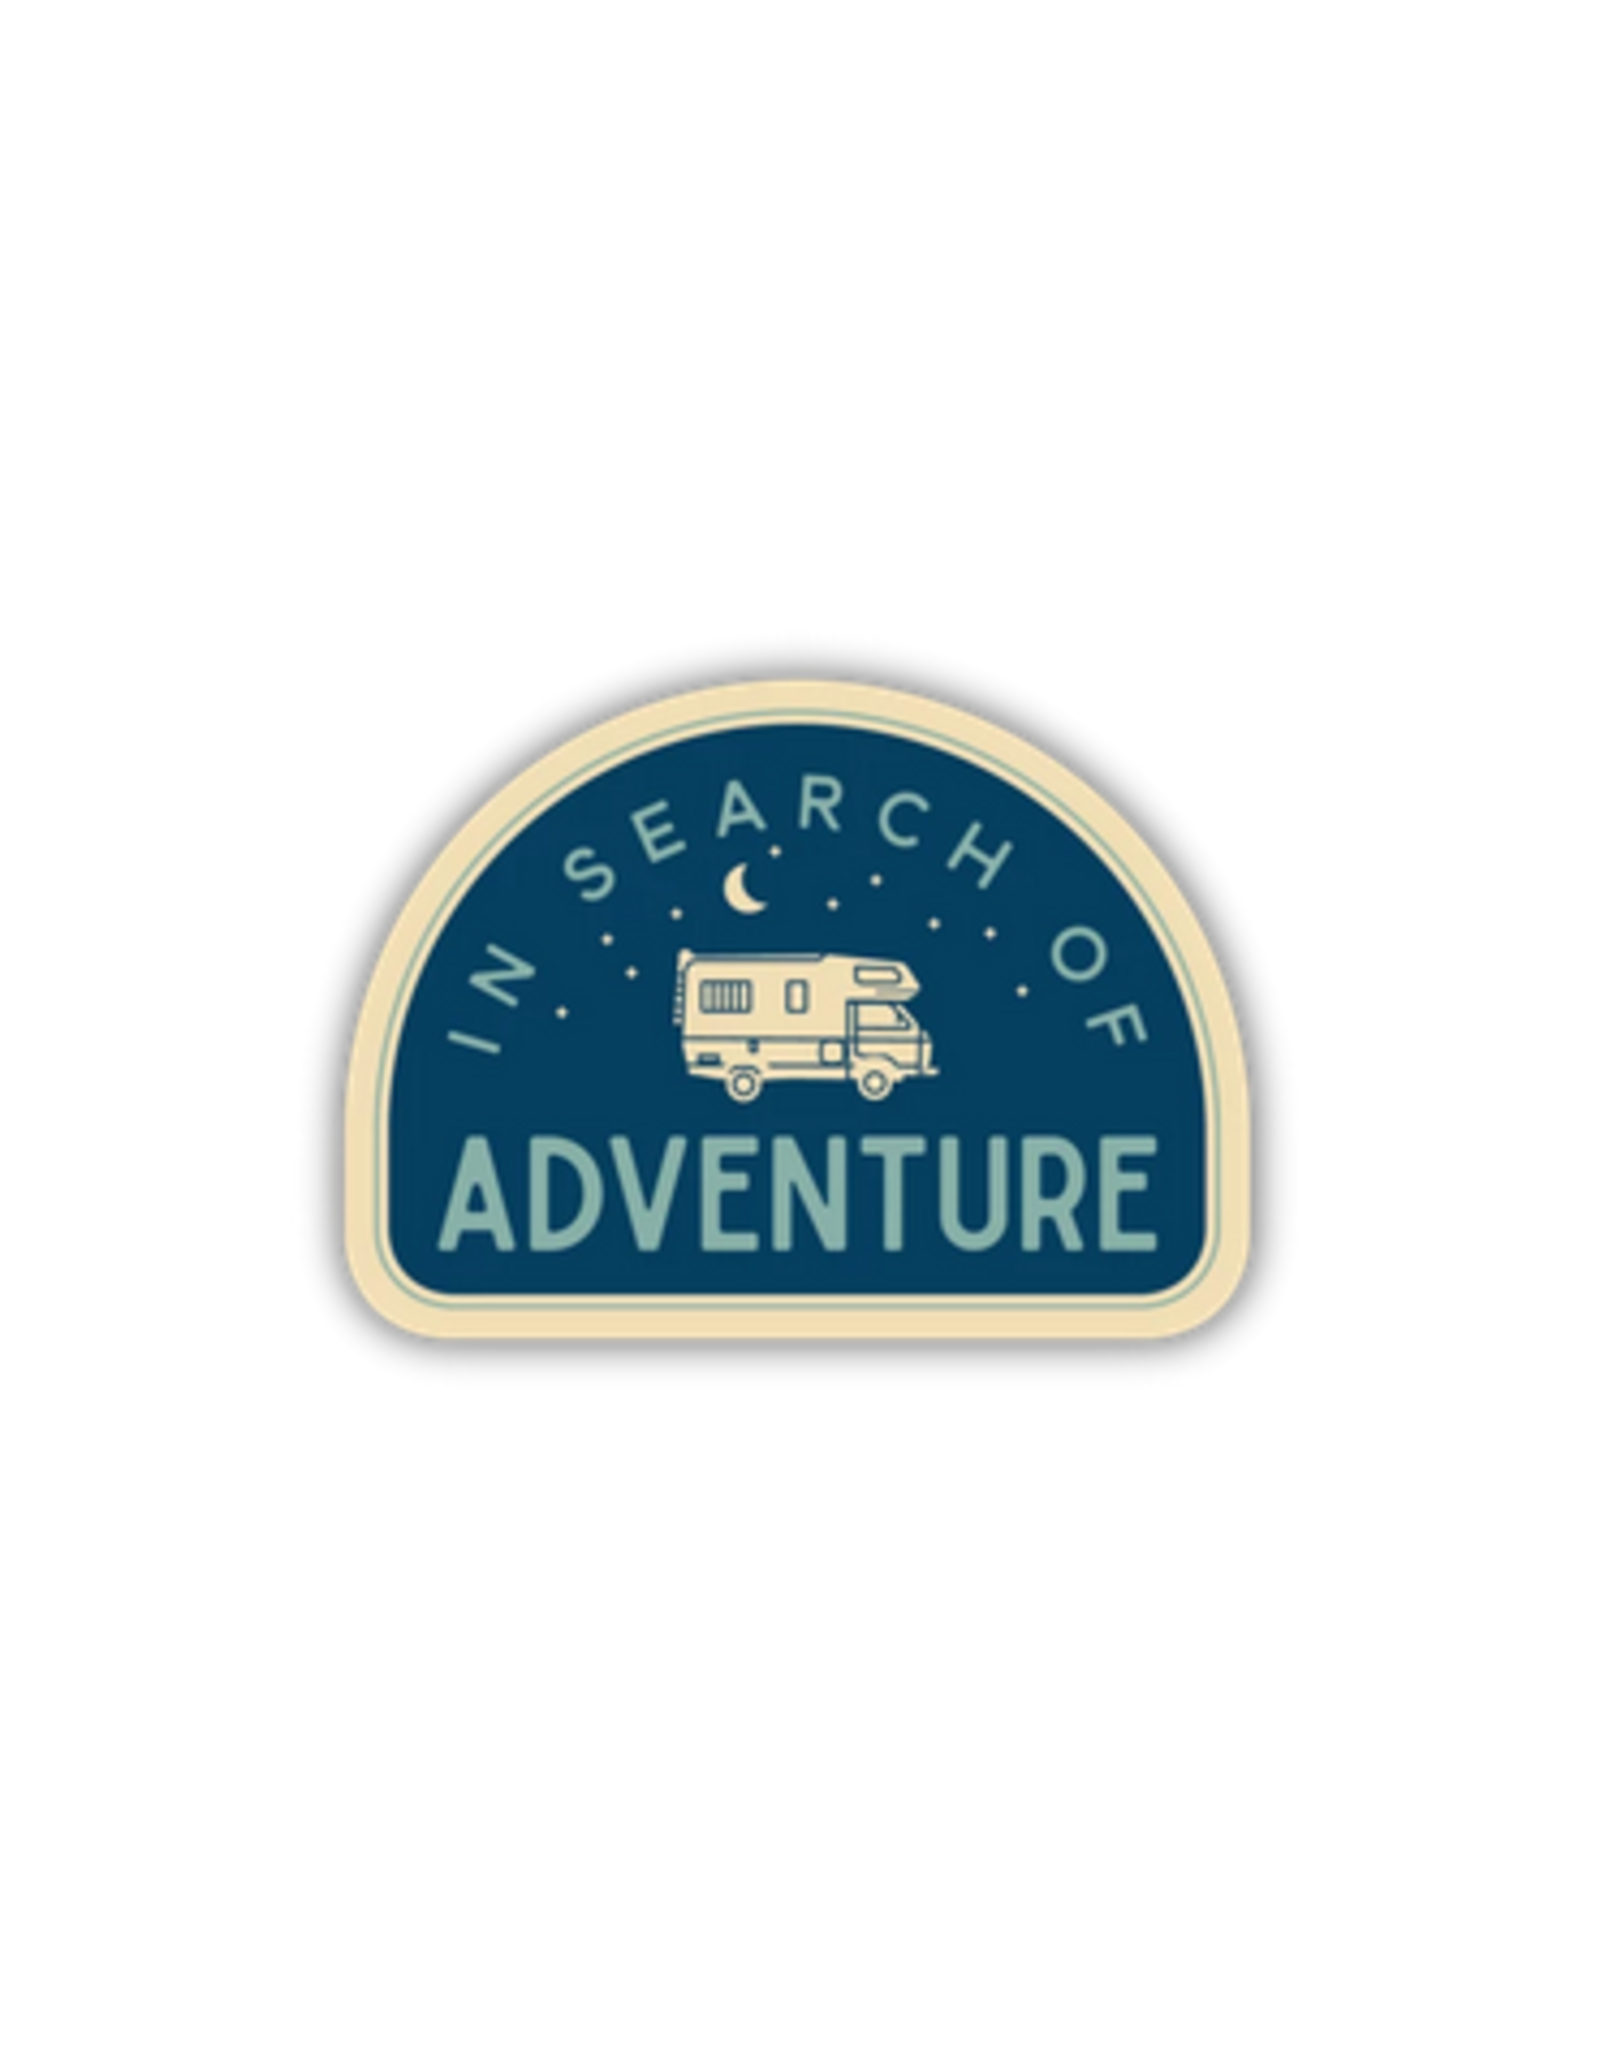 In search of adventure patch